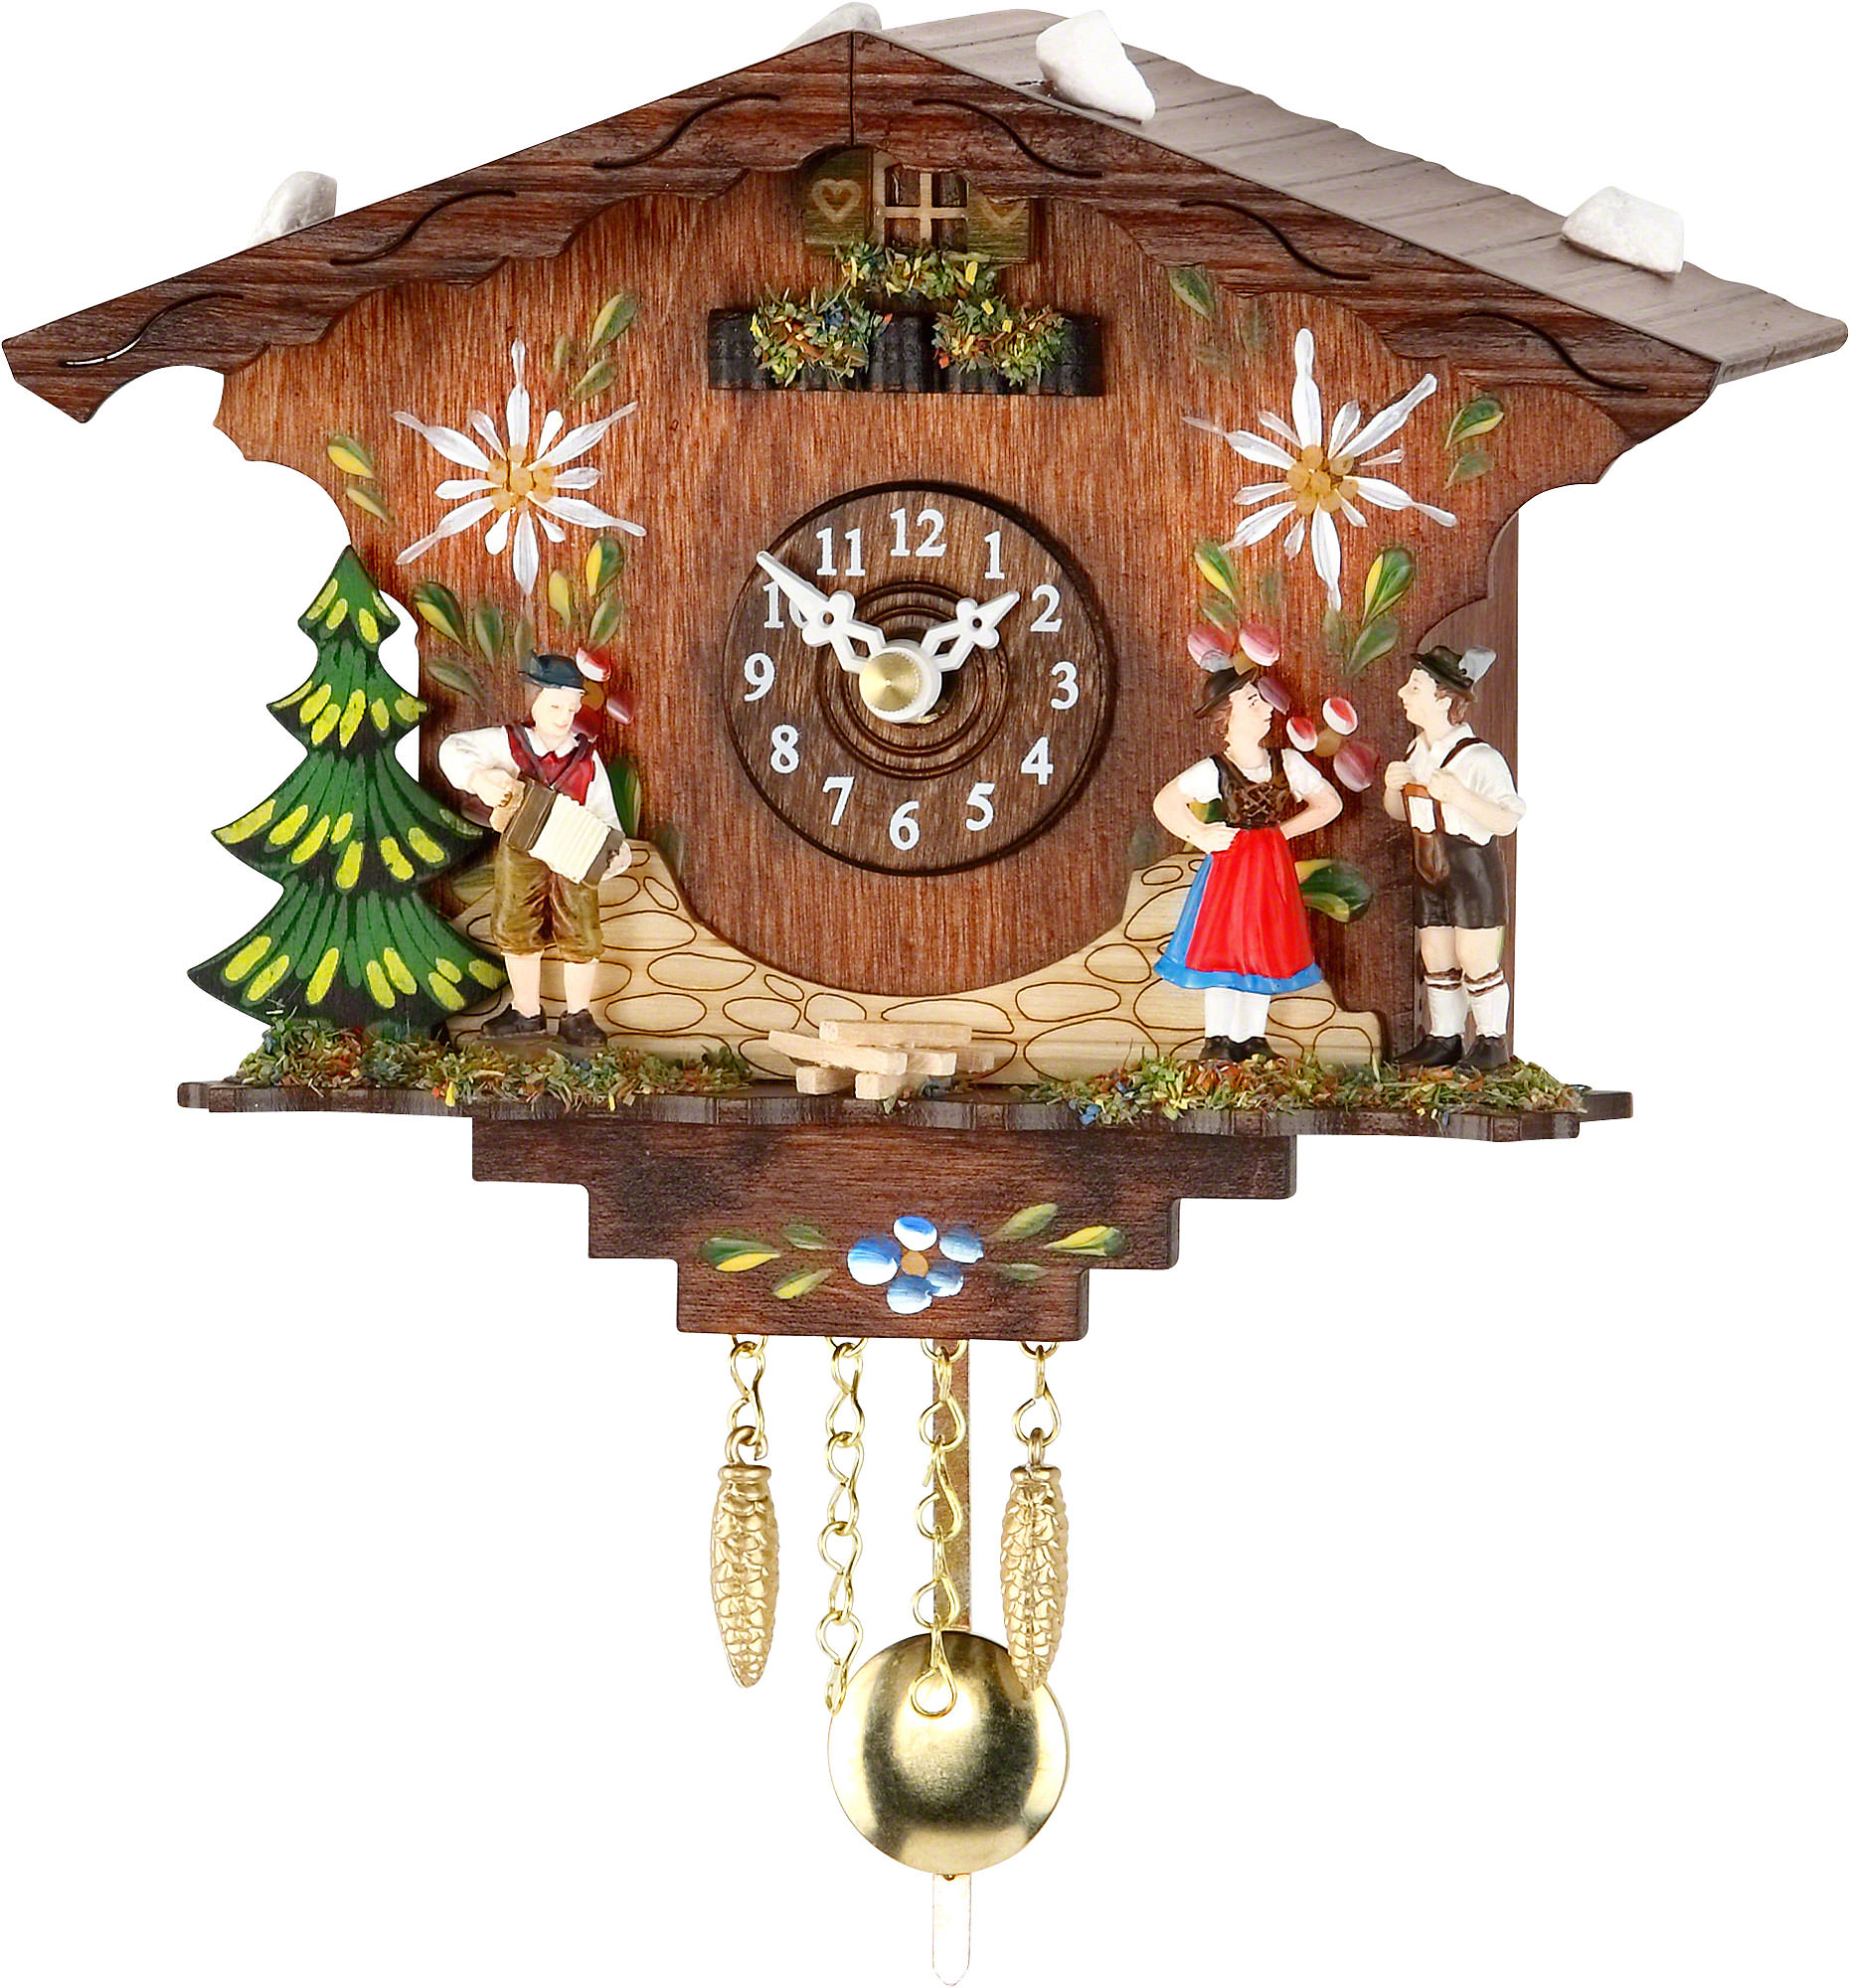 Cuckoo clock kuckulino quartz movement black forest pendulum clock style 13cm by trenkle uhren - Cuckoo clock pendulum ...